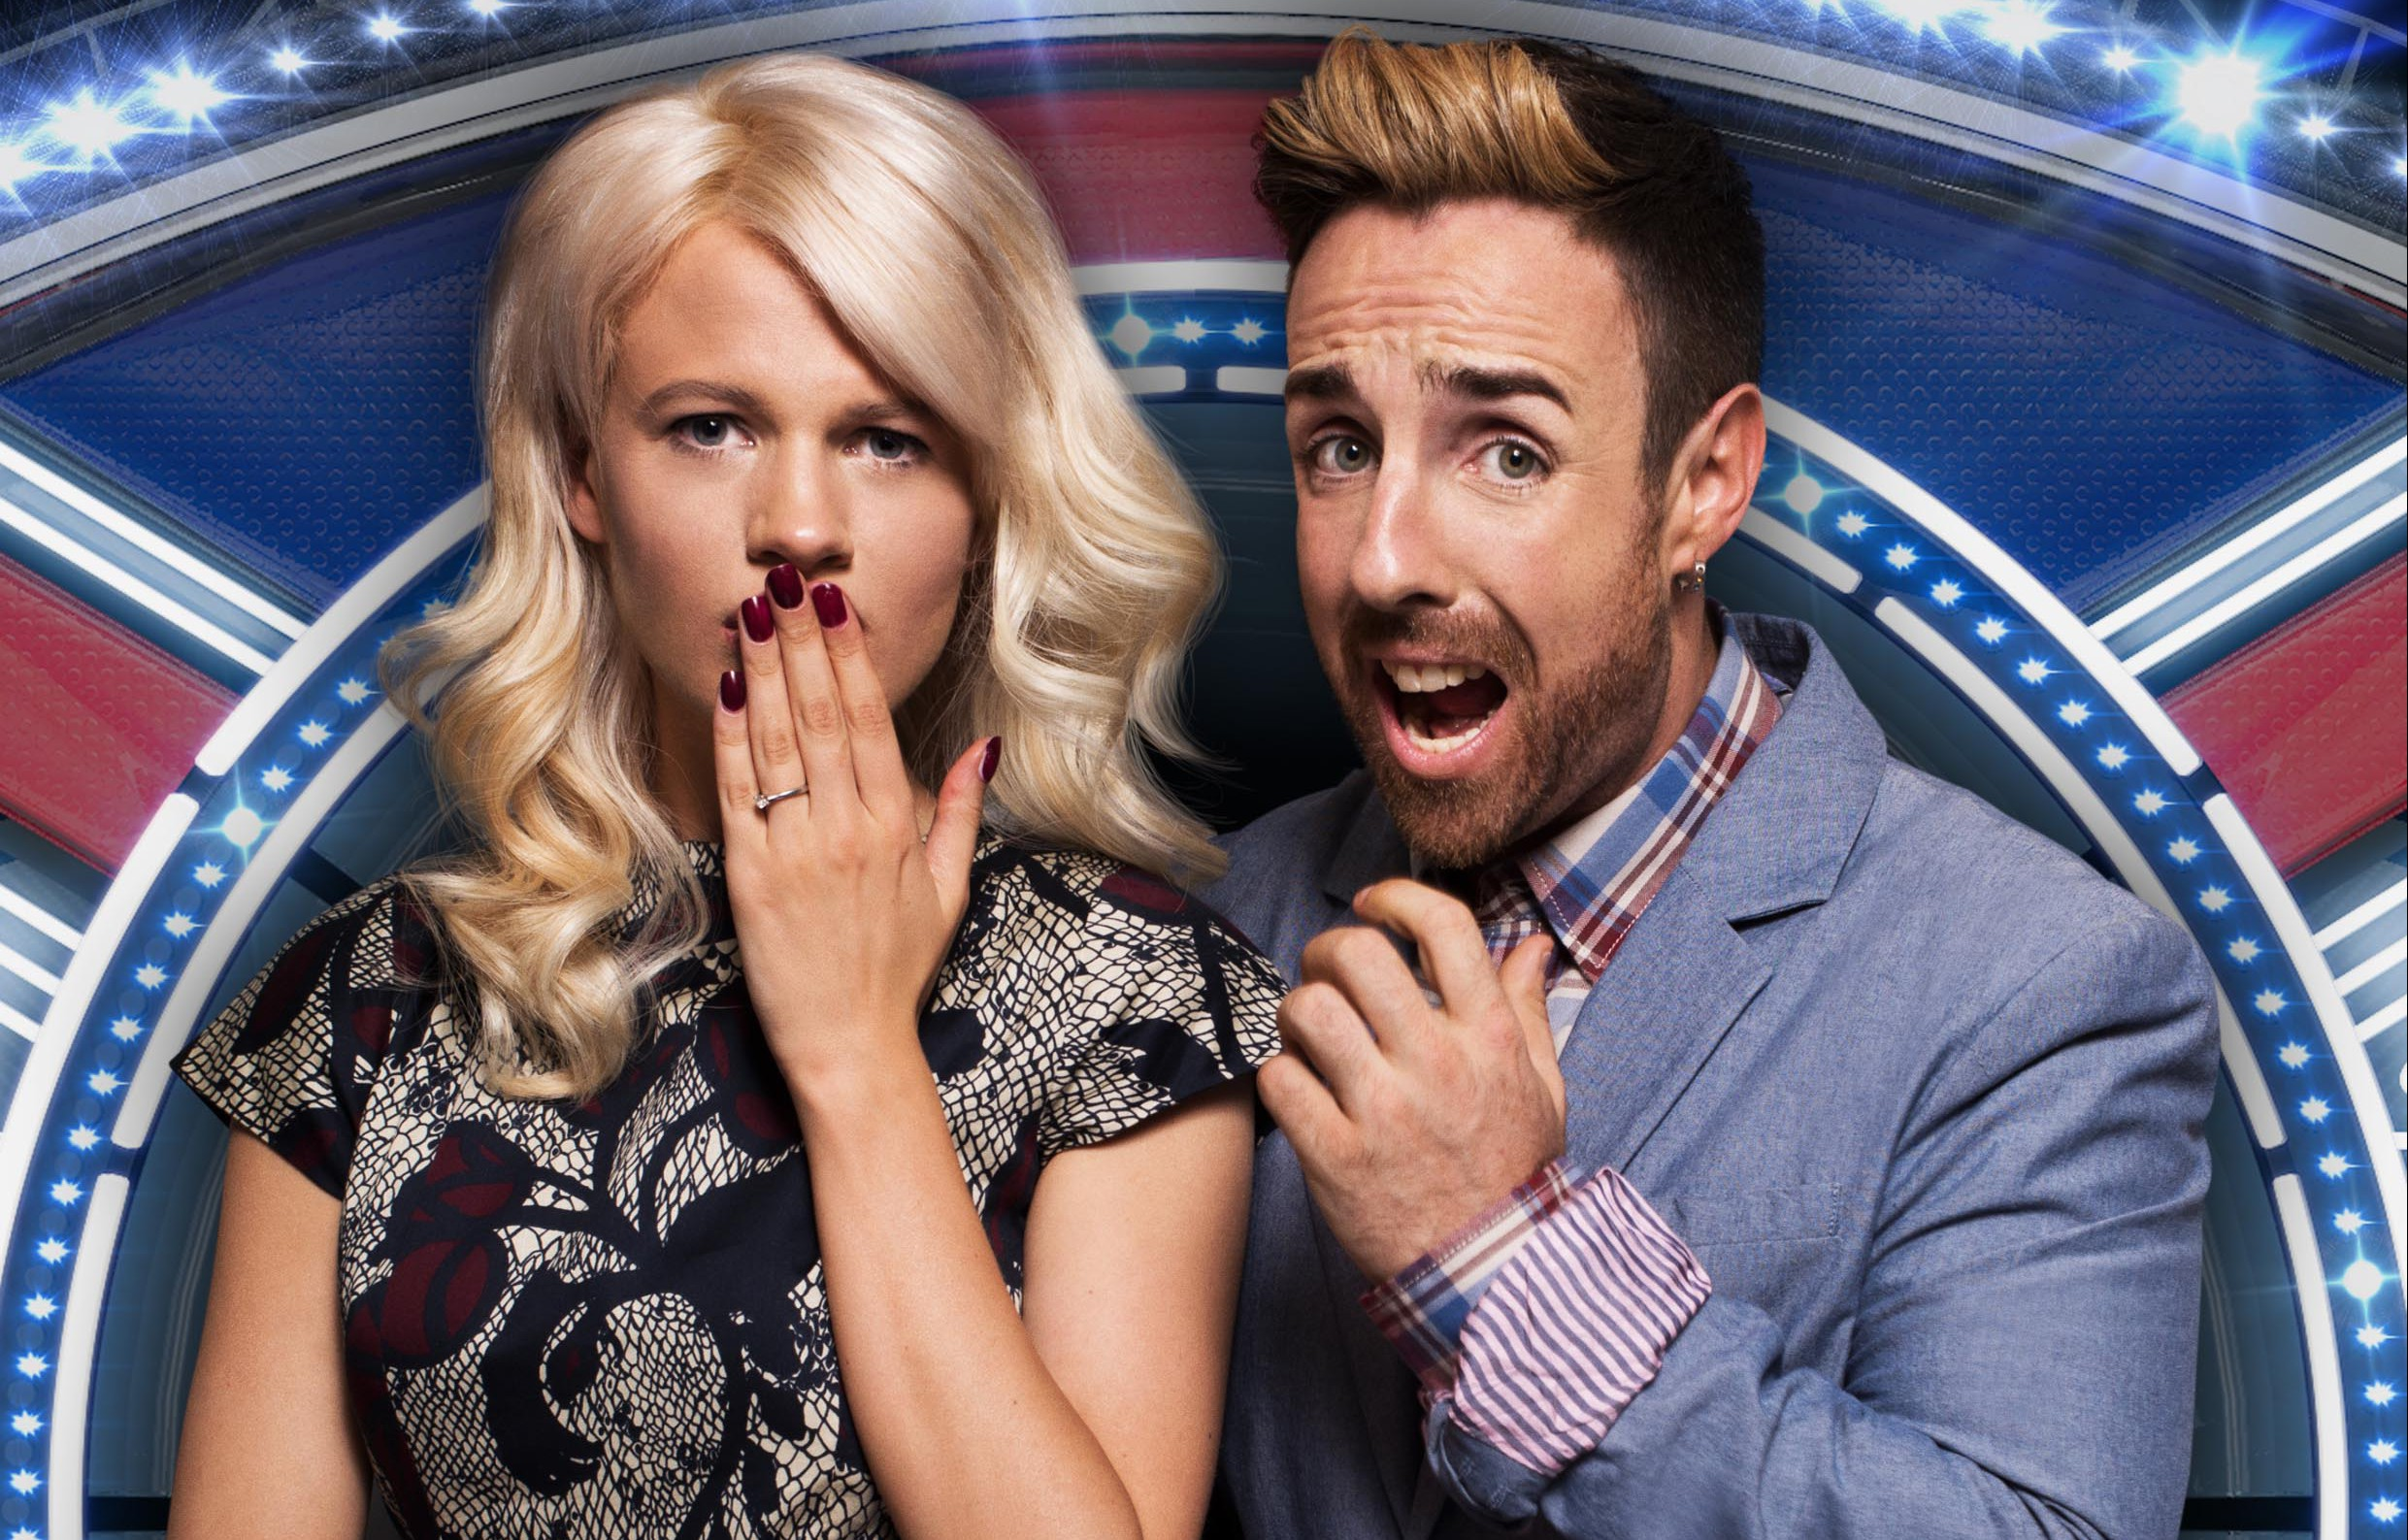 Celebrity Big Brother 2015: X Factor couple Stevi Ritchie and Chloe Jasmine won't have sex in the house